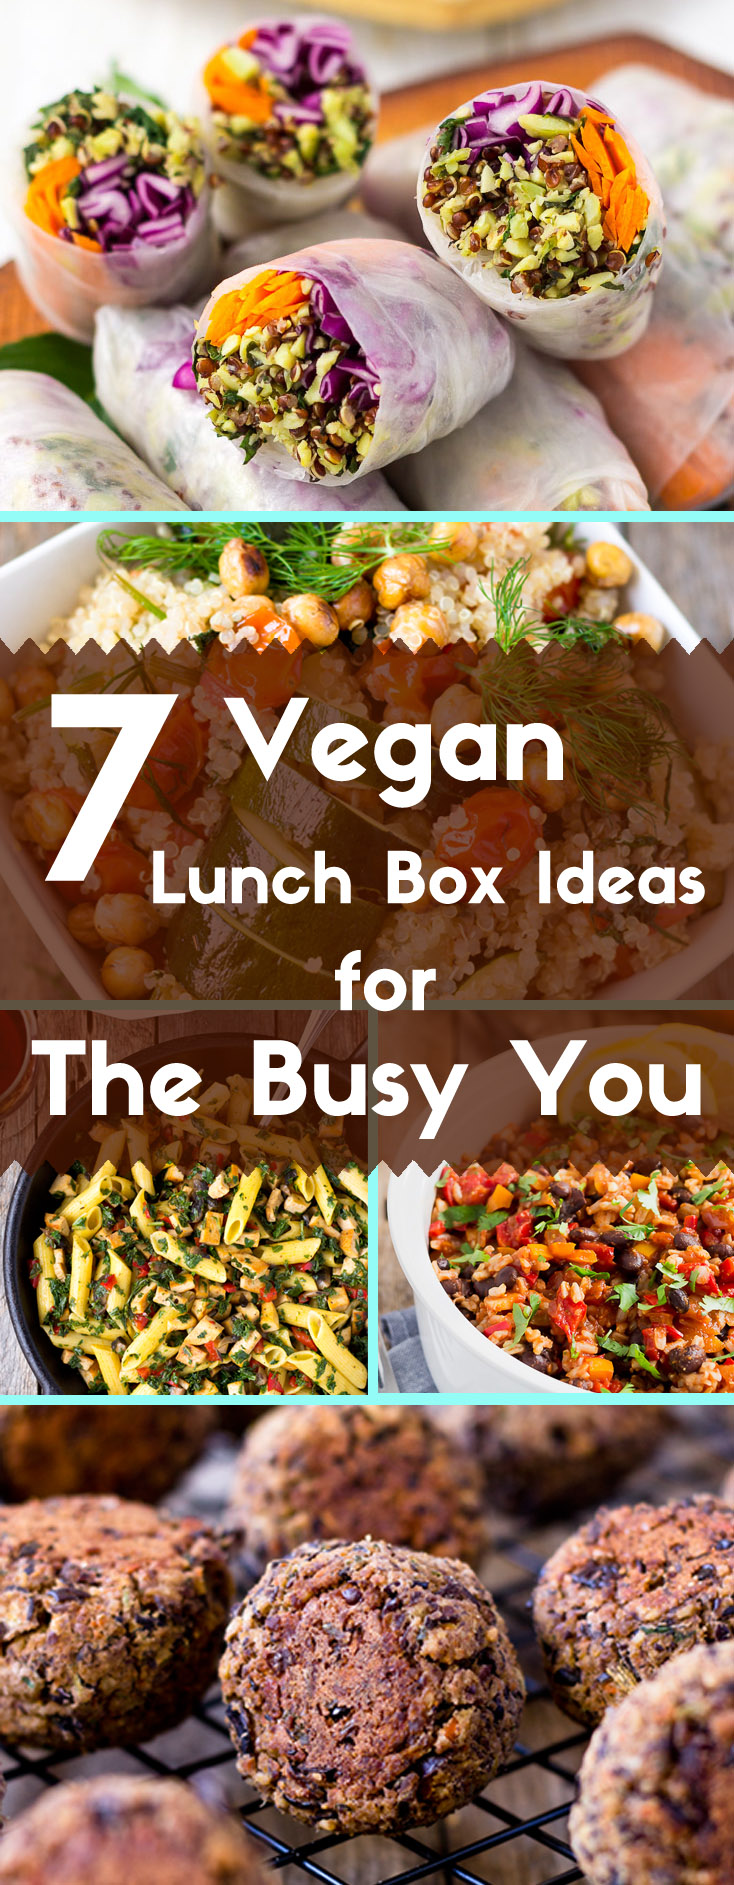 7 Vegan Lunch Box Ideas for The Busy You